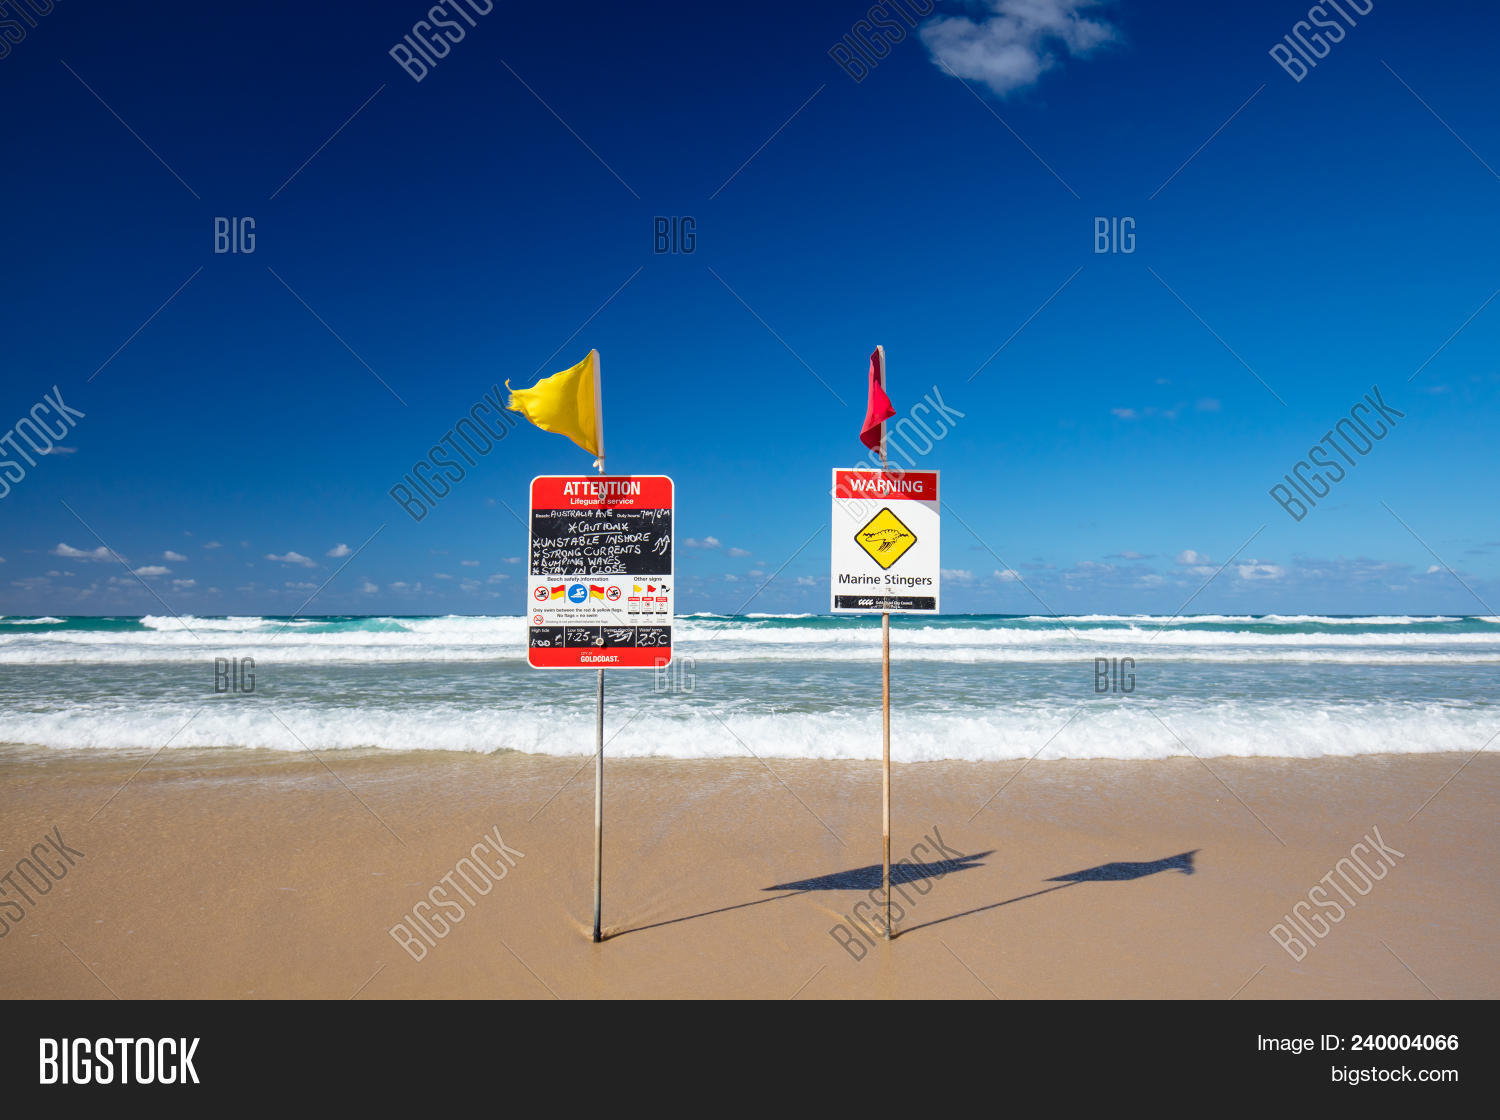 5208361ba1f 🔥 Surf Lifesaving Flags On A Hot Sunny Day In Broadbeach